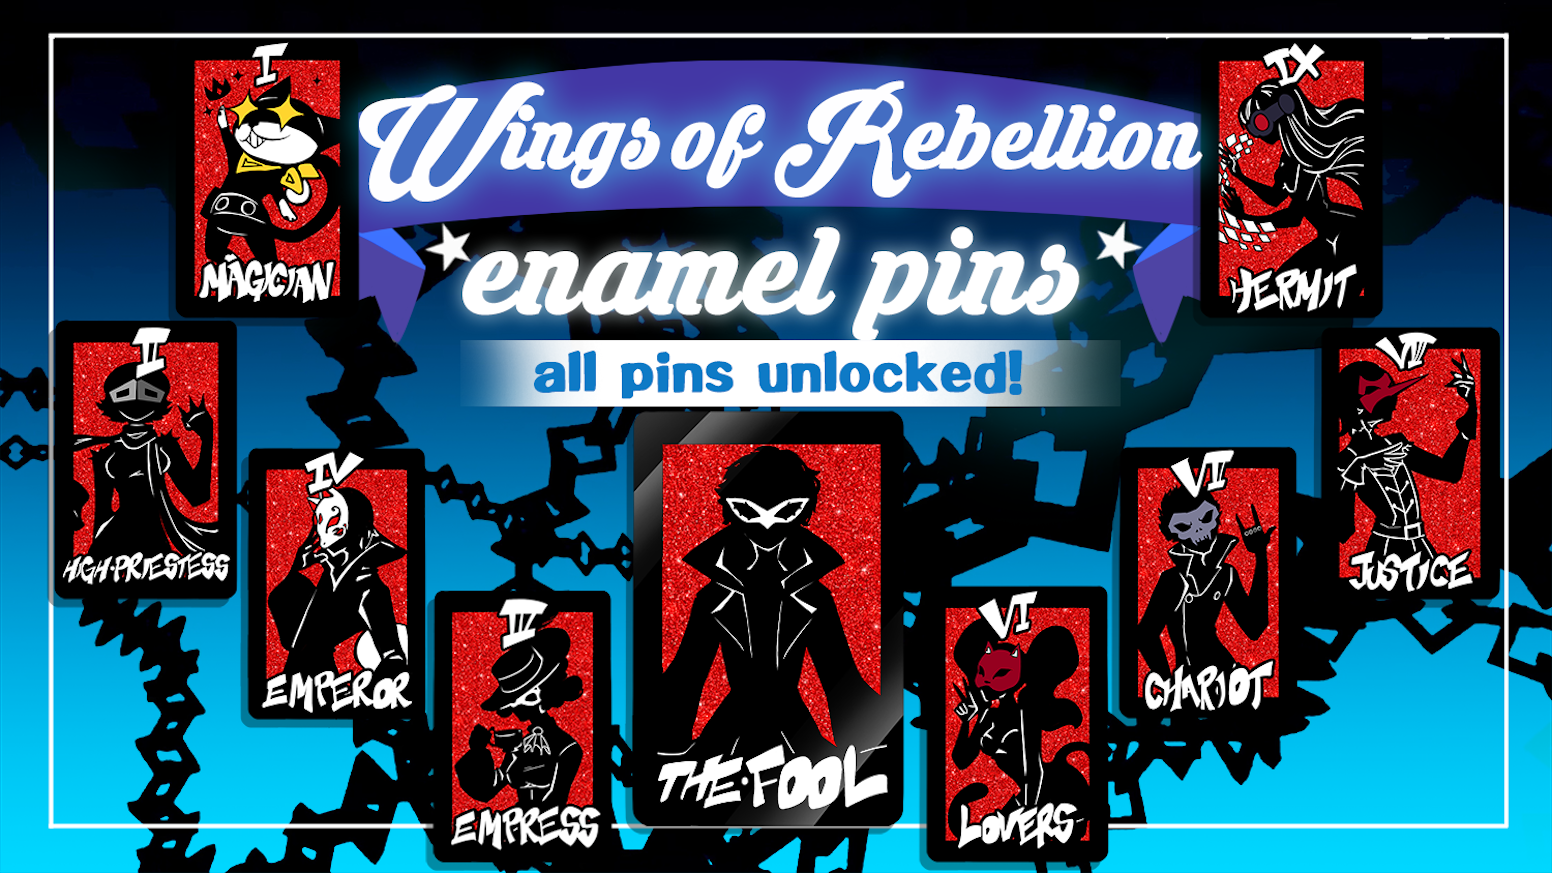 50mm x 32mm Tarot themed Persona 5 enamel pins